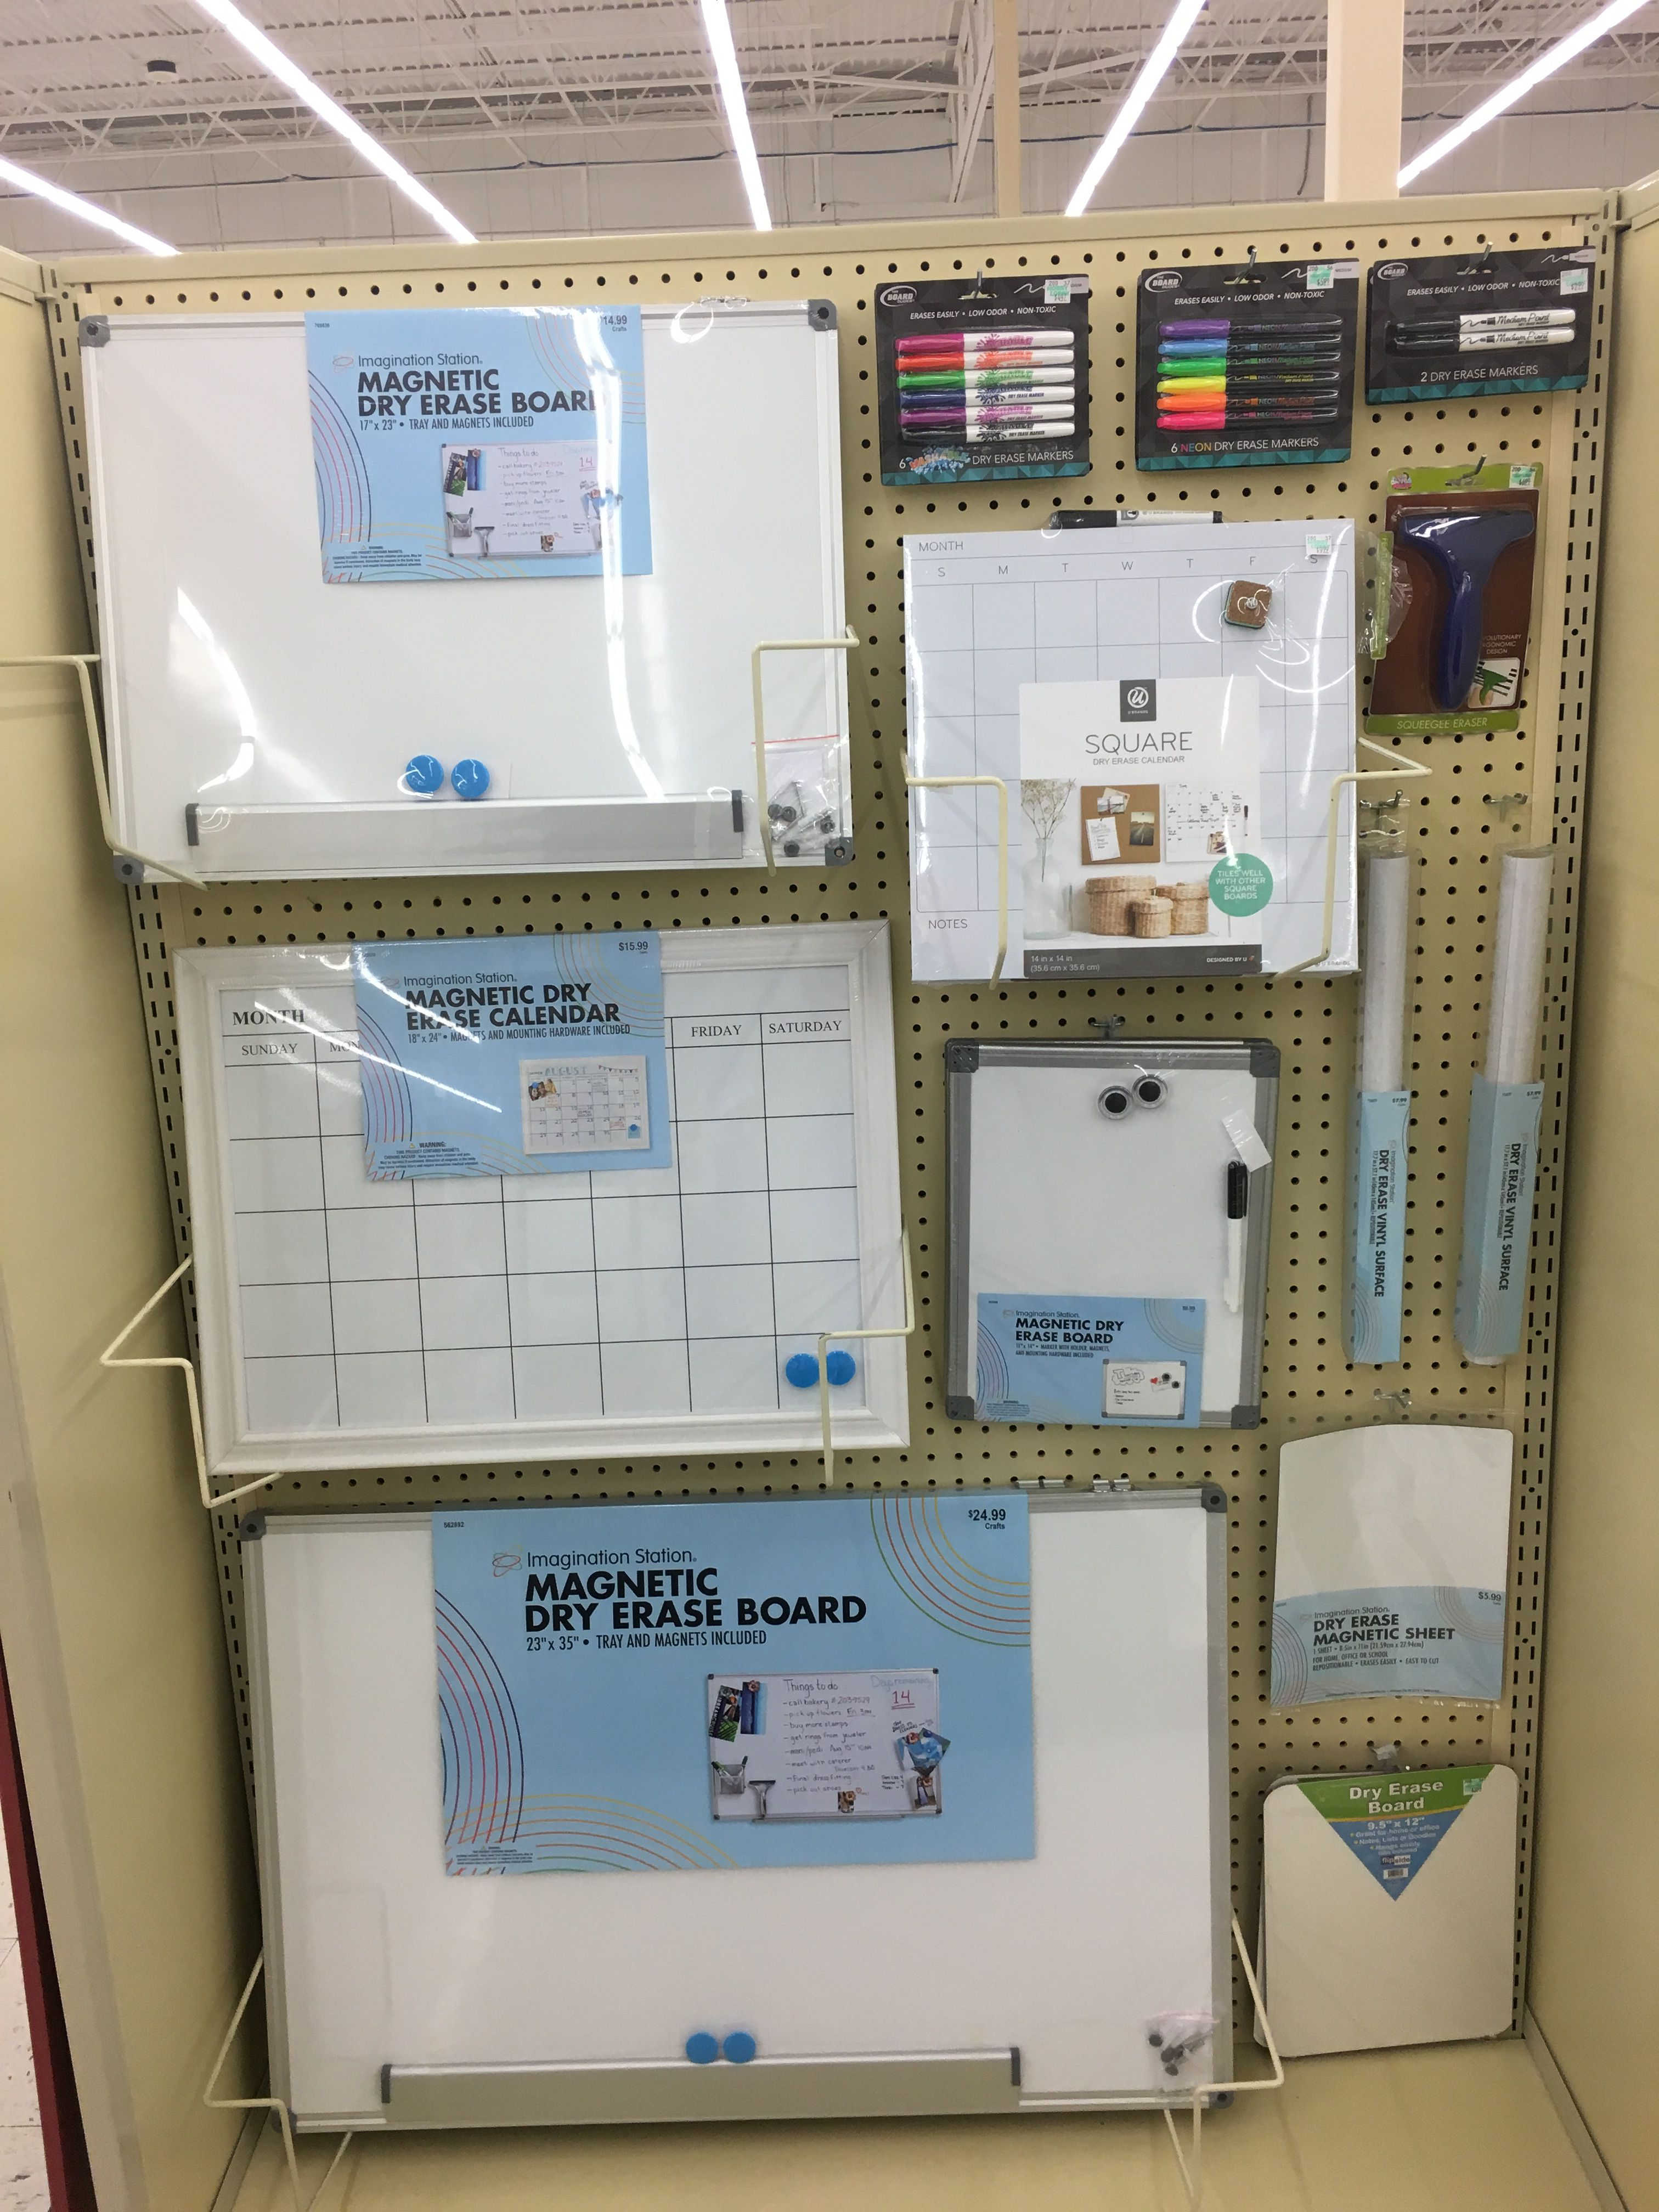 Diy Behavior And Reward Chart 5 Dry Erase Board Markers 2 Pack Of 50 Ct Smiley Faces And 3 Roll Of Magnet T Dry Erase Board Behavior Board Magnetic Board